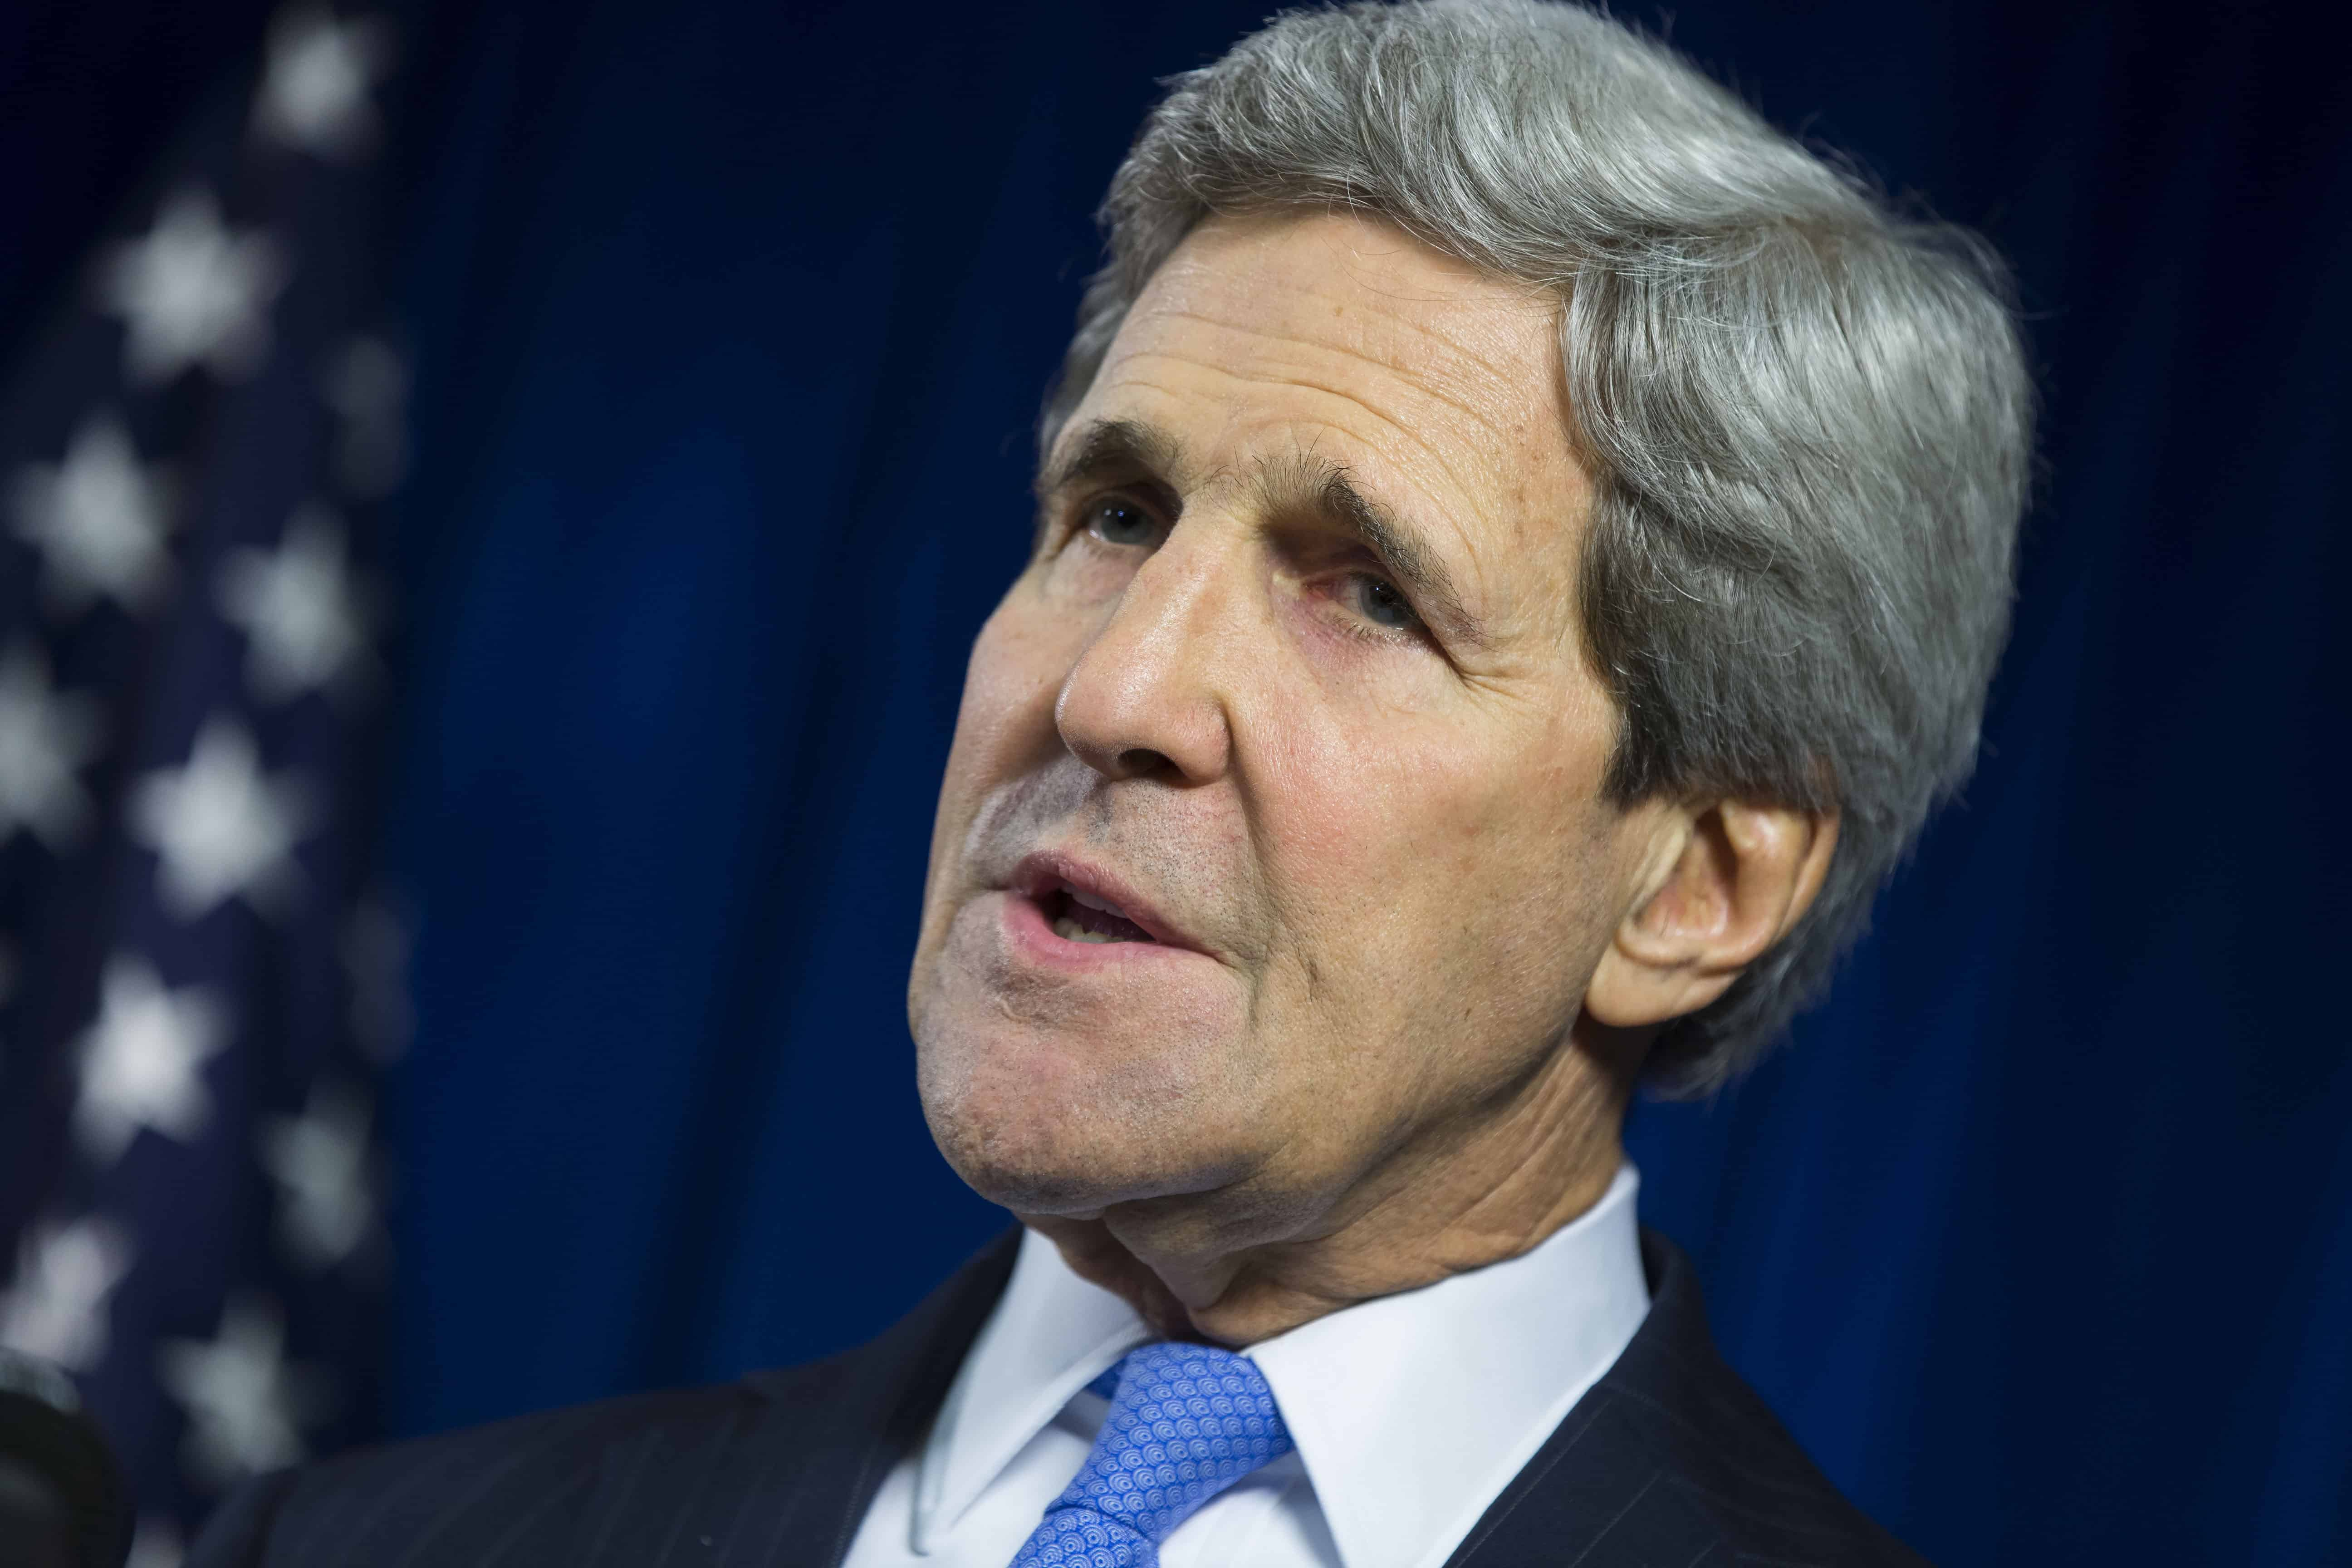 U.S. Secretary of State John Kerry speaks during a news conference at the U.S. Embassy in London, on Dec. 16, 2014.